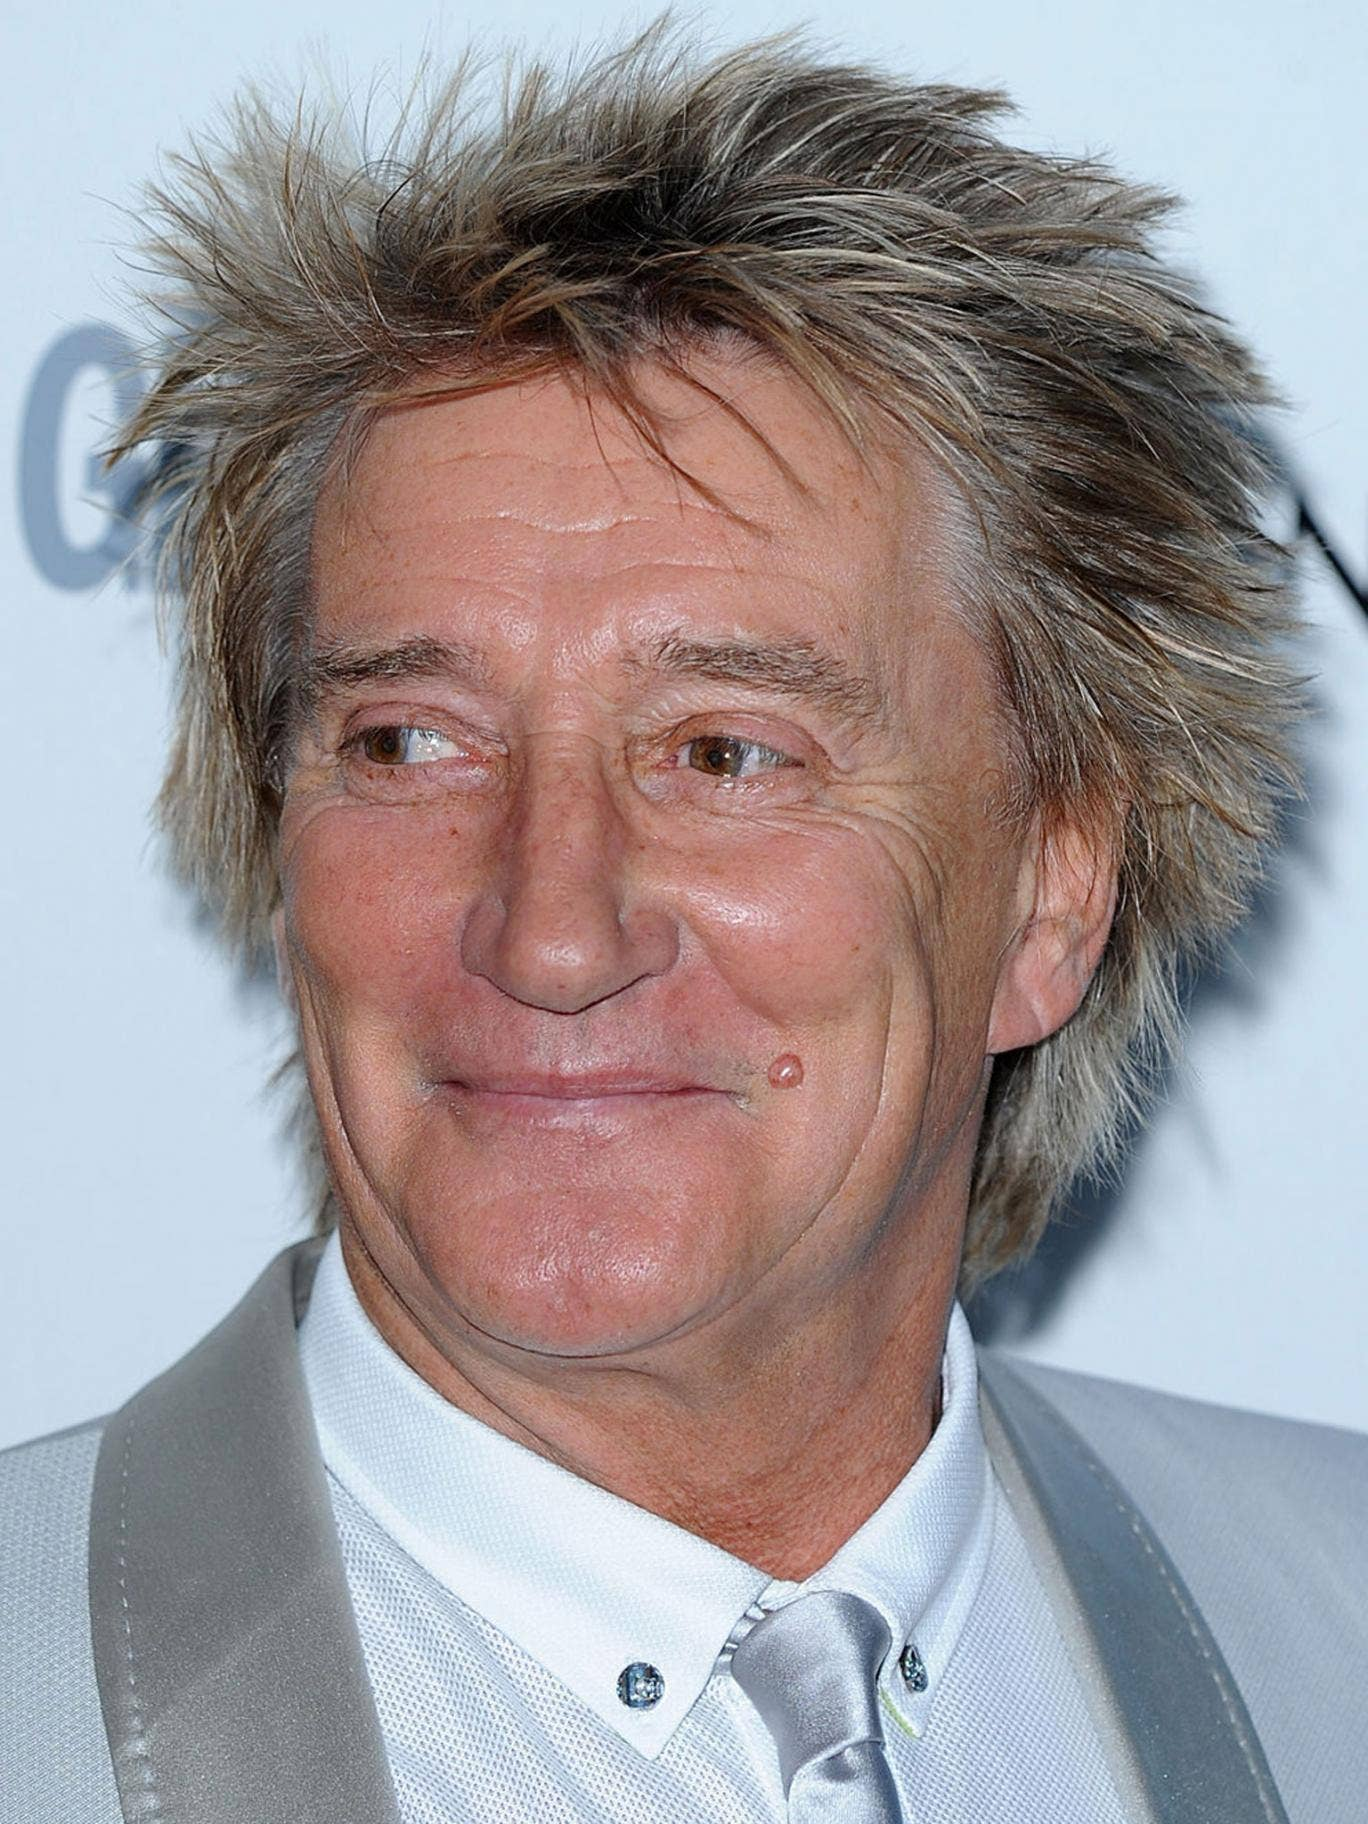 Rod Stewart has scored his first number one album since 1979 at the age of 68